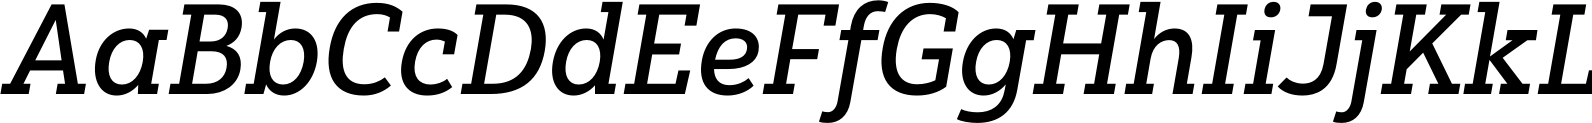 Yorkten Slab Normal Medium Italic Font